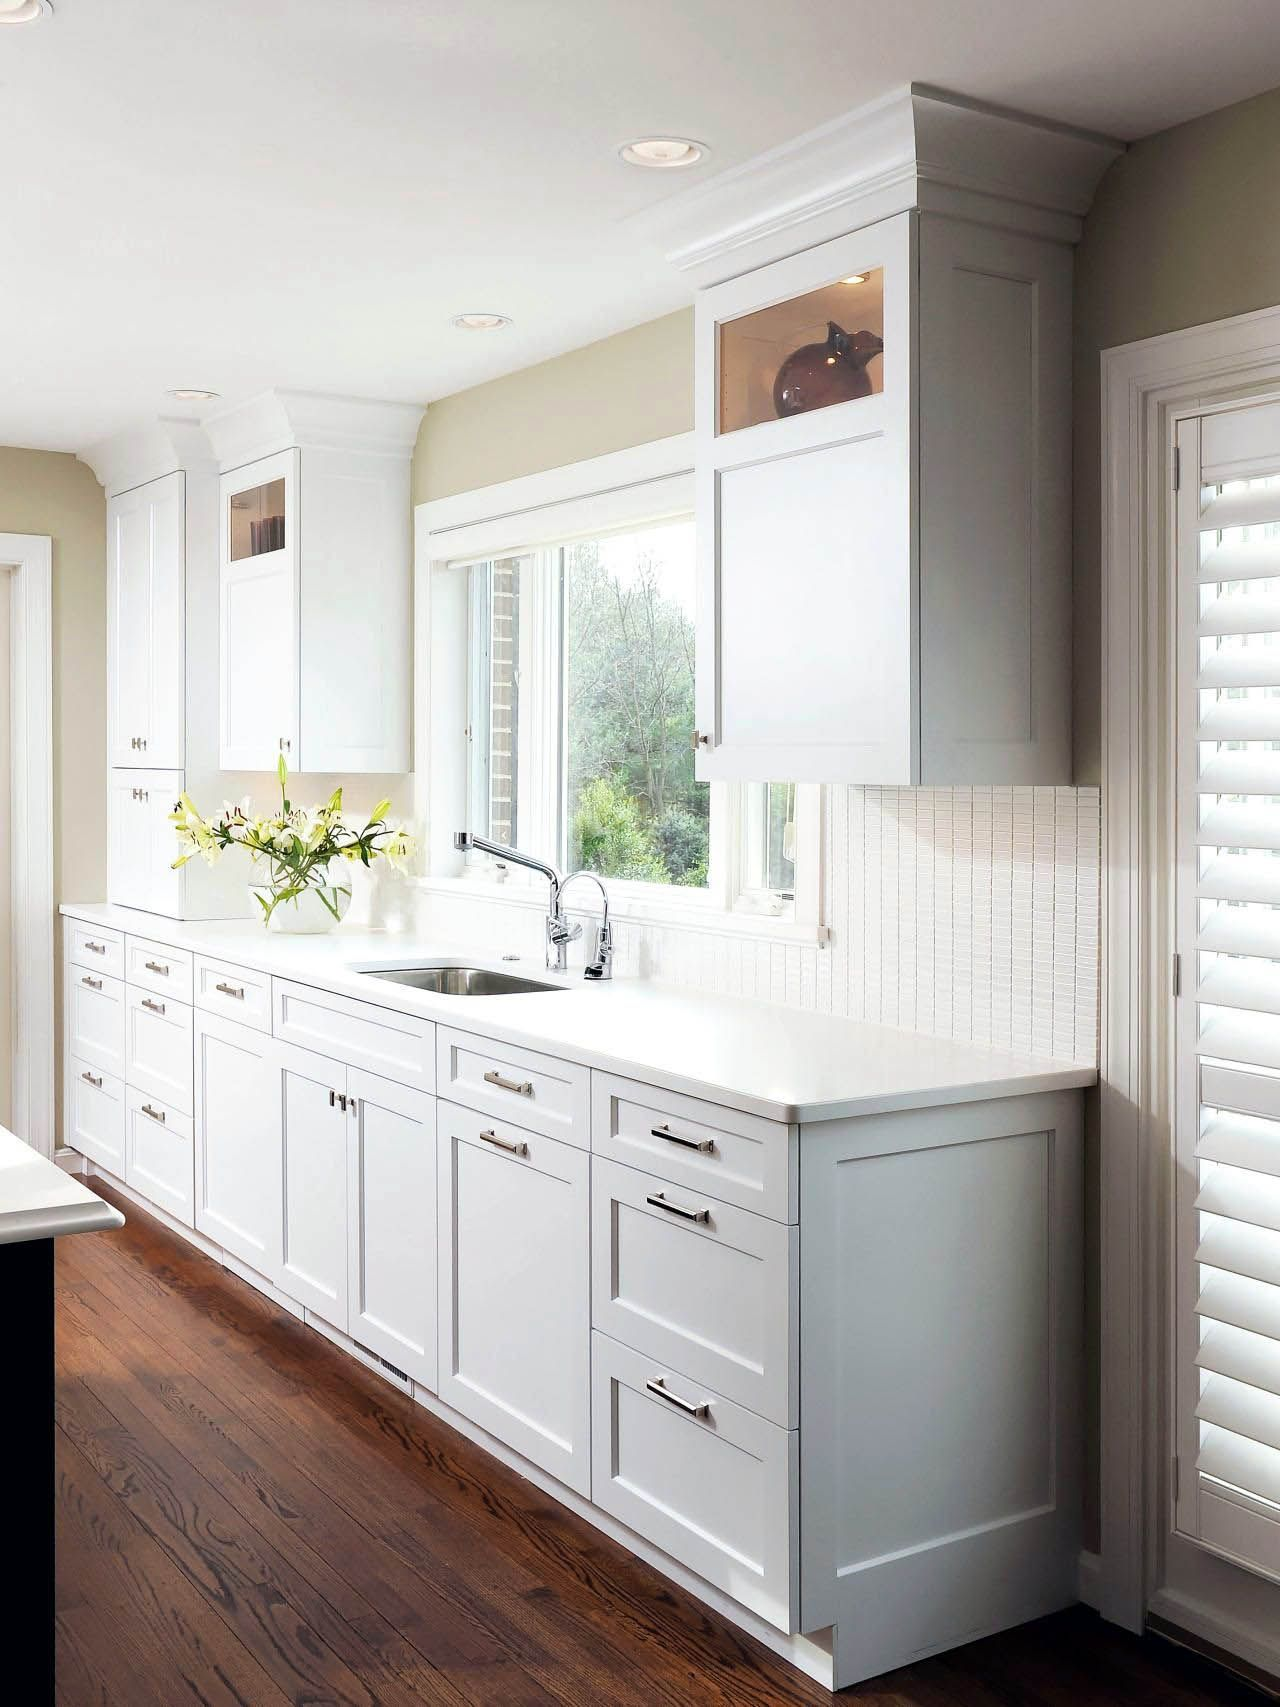 Gorgeous ana white kitchen cabinets one and only indoneso ...